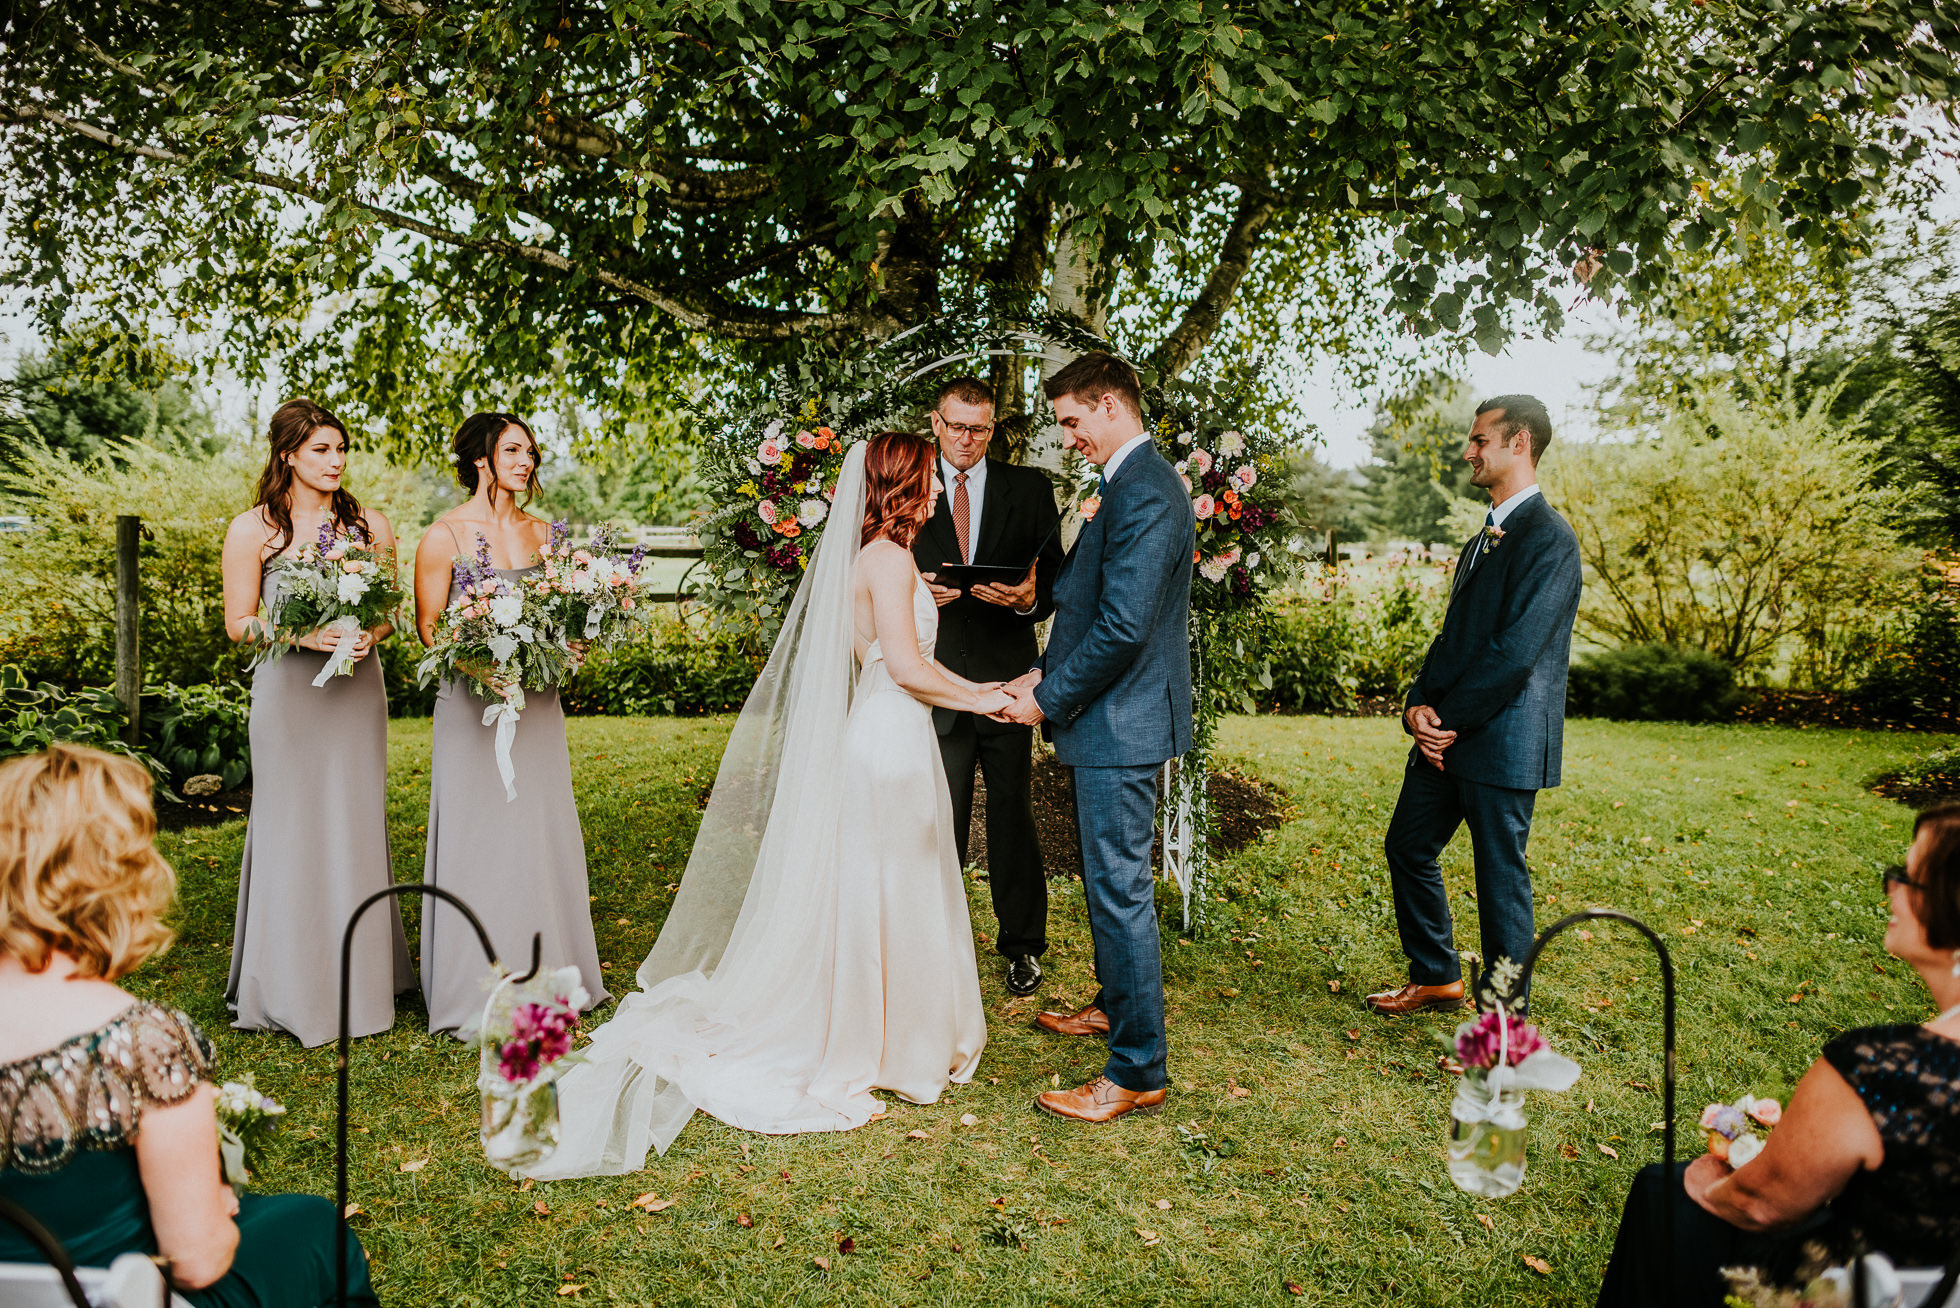 outdoor ceremony at olde tater barn wedding photographed by traverse the tides